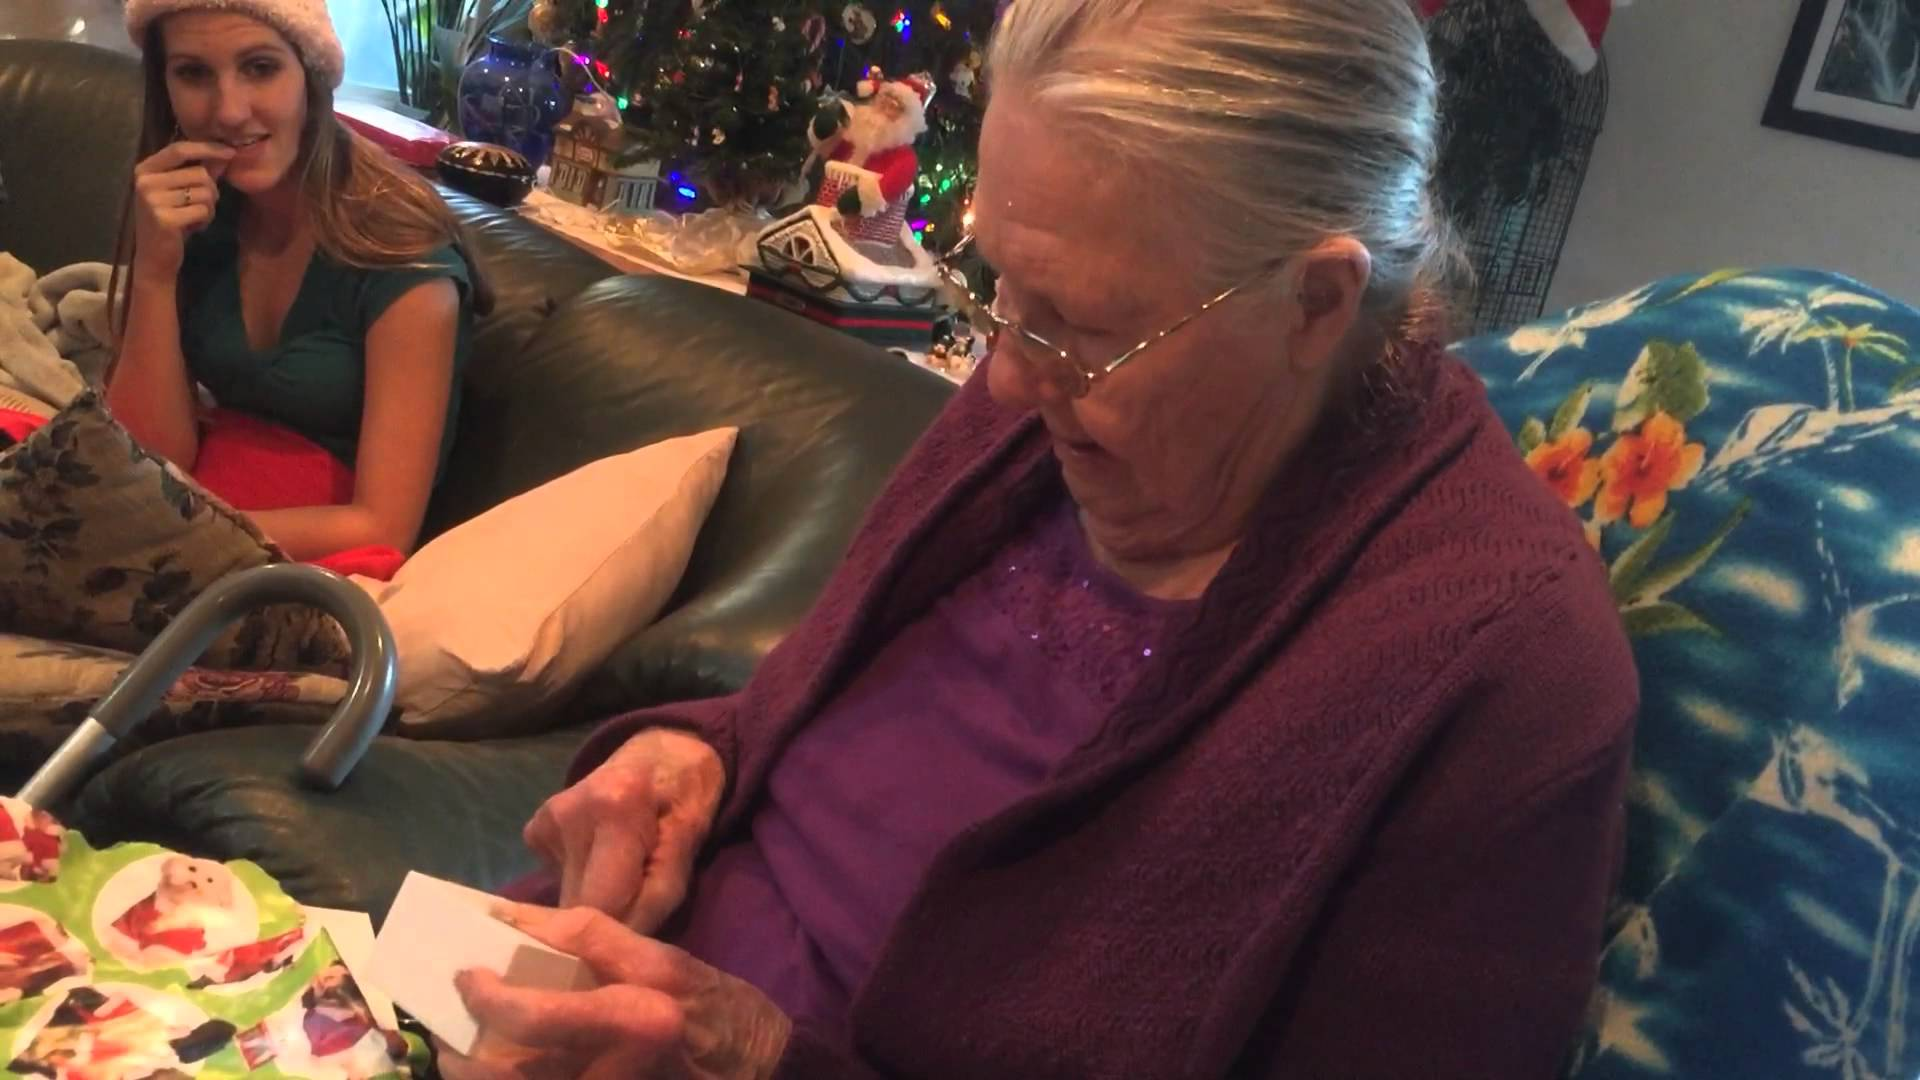 Grandma Unwraps Chocolate iPhone, Thinks Its A Real iPhone grandma opens unwraps chocolate